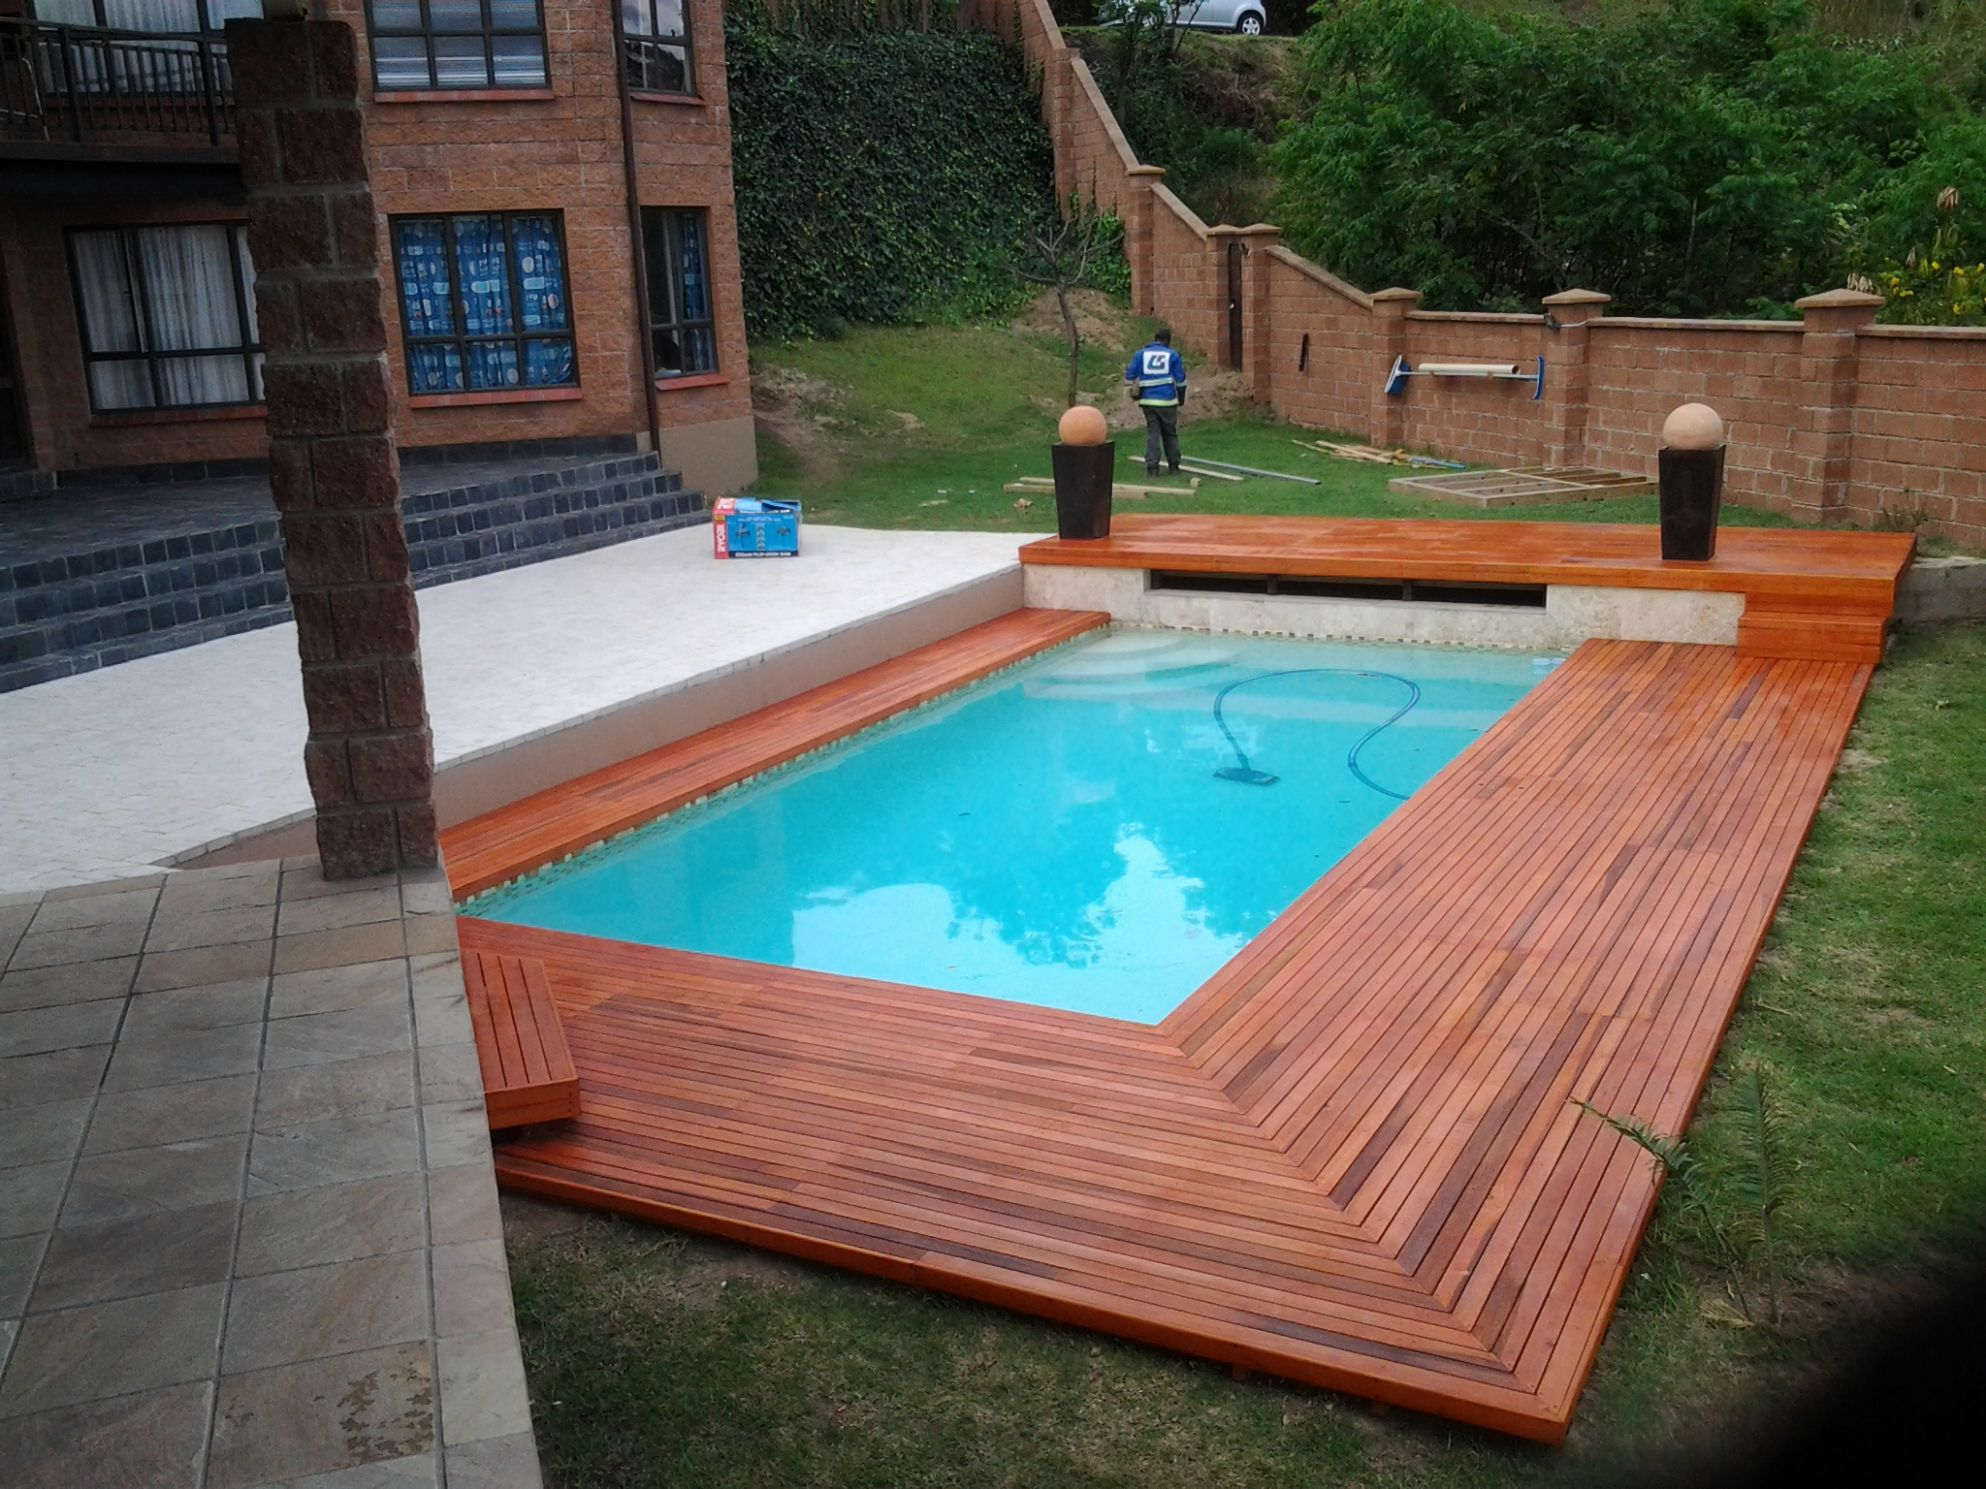 Square Pool Design With Wooden Floor Ideas For Best Outdoor ..